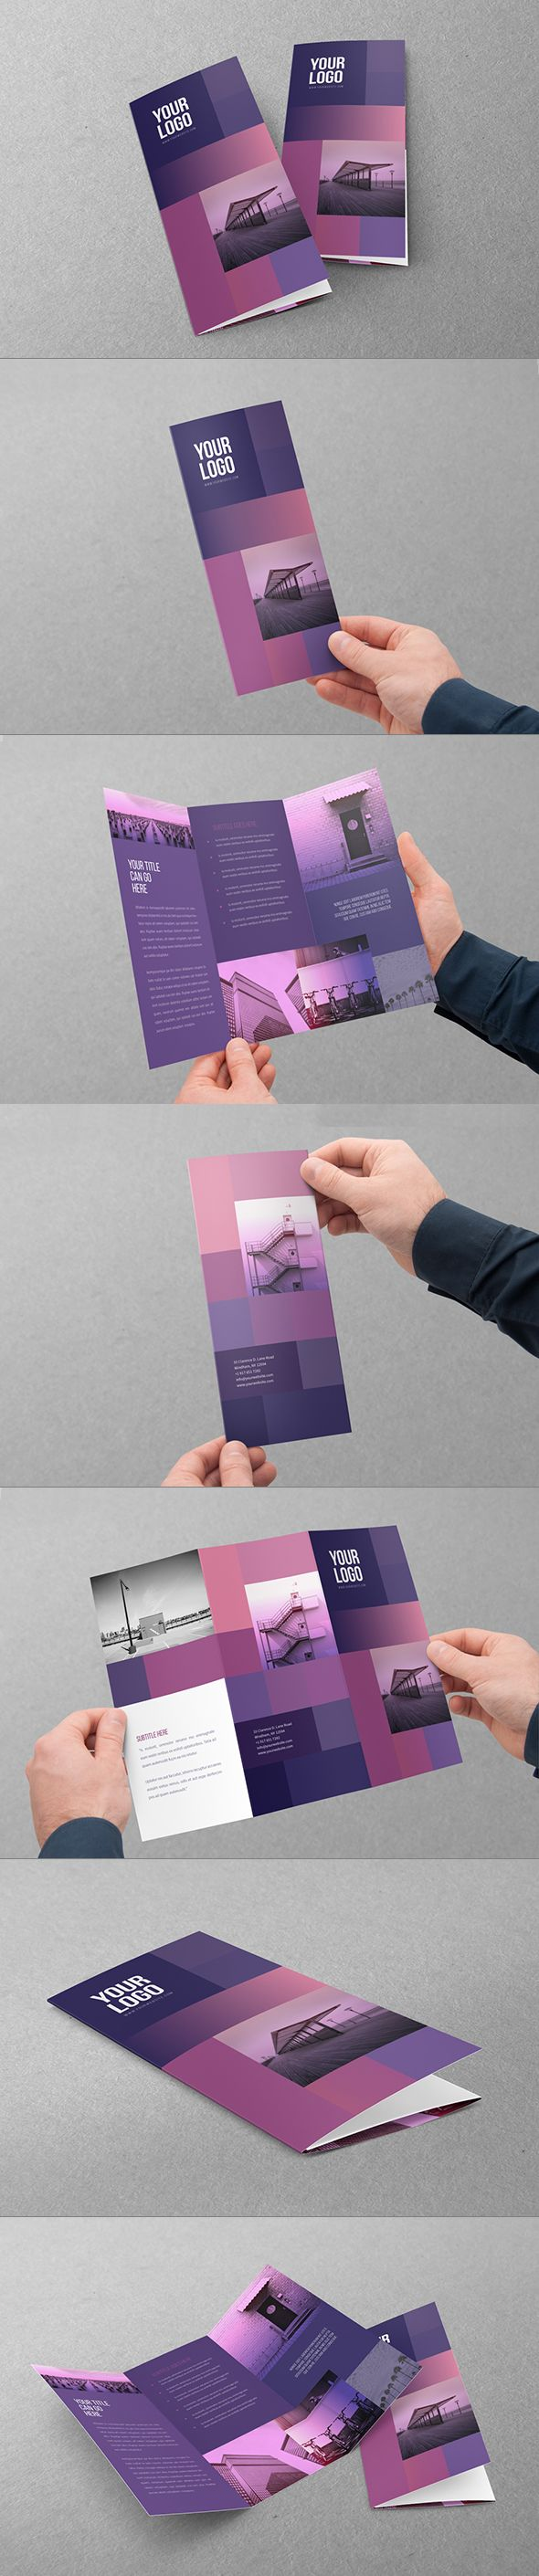 Clean Purple Squares Trifold